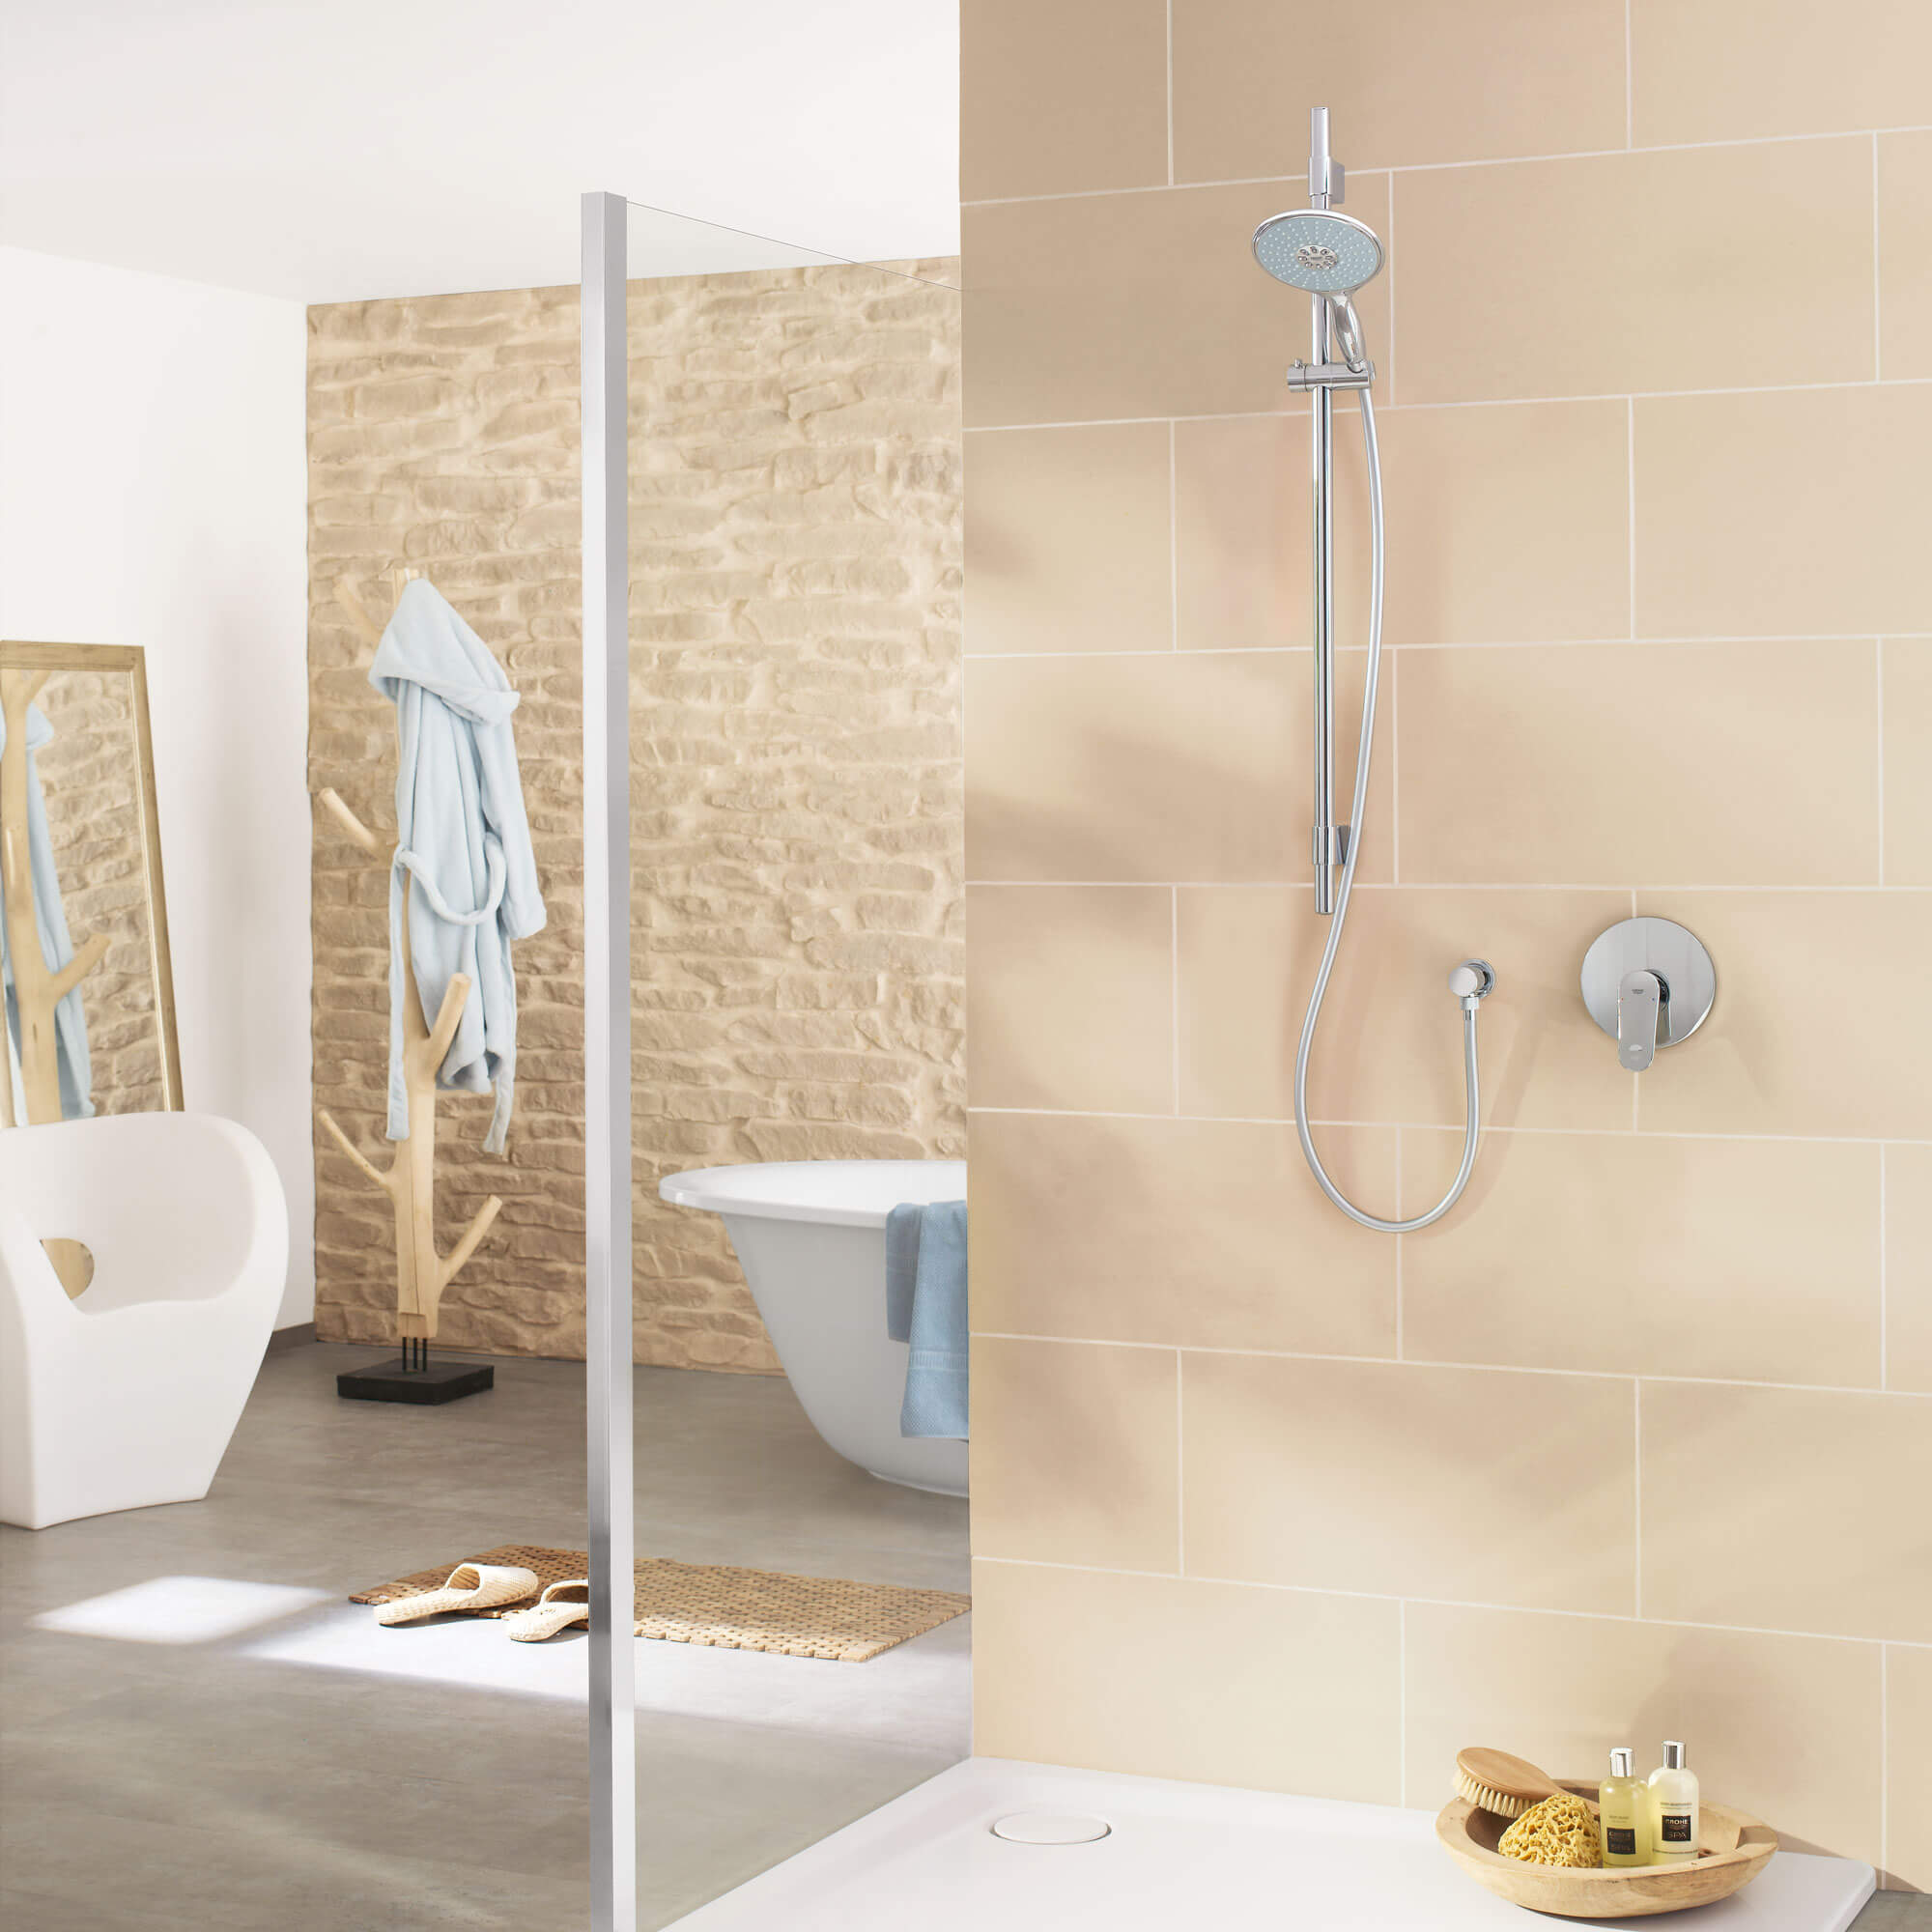 Collections de douche GROHE